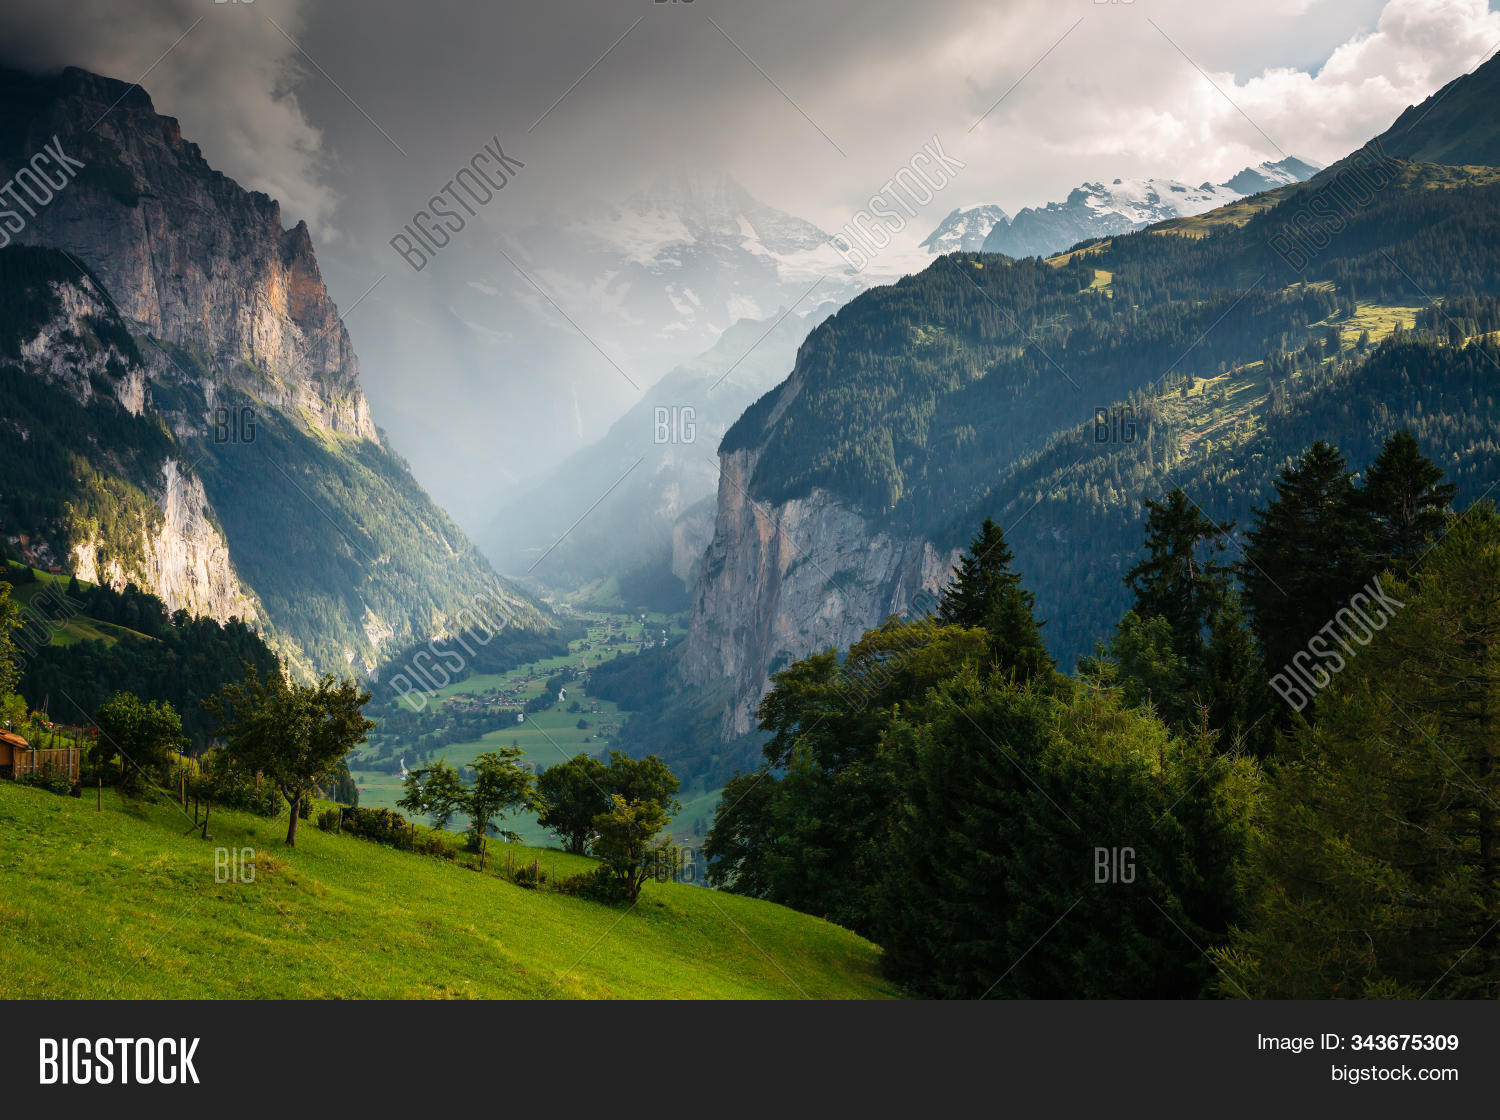 Panorama View Summer Image Photo Free Trial Bigstock Images, Photos, Reviews